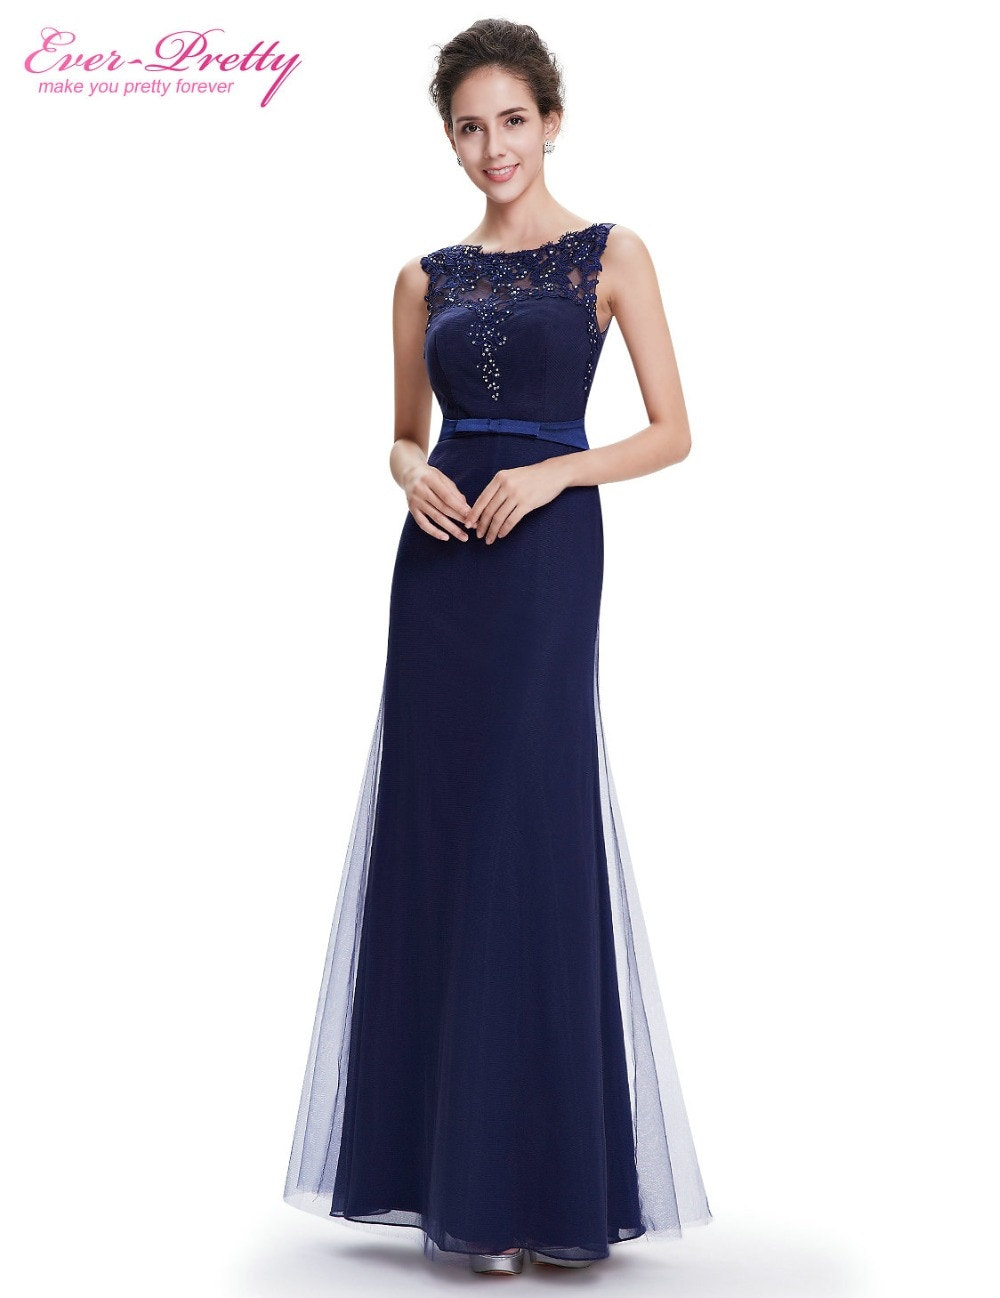 aliexpress evening dresses photo - 1